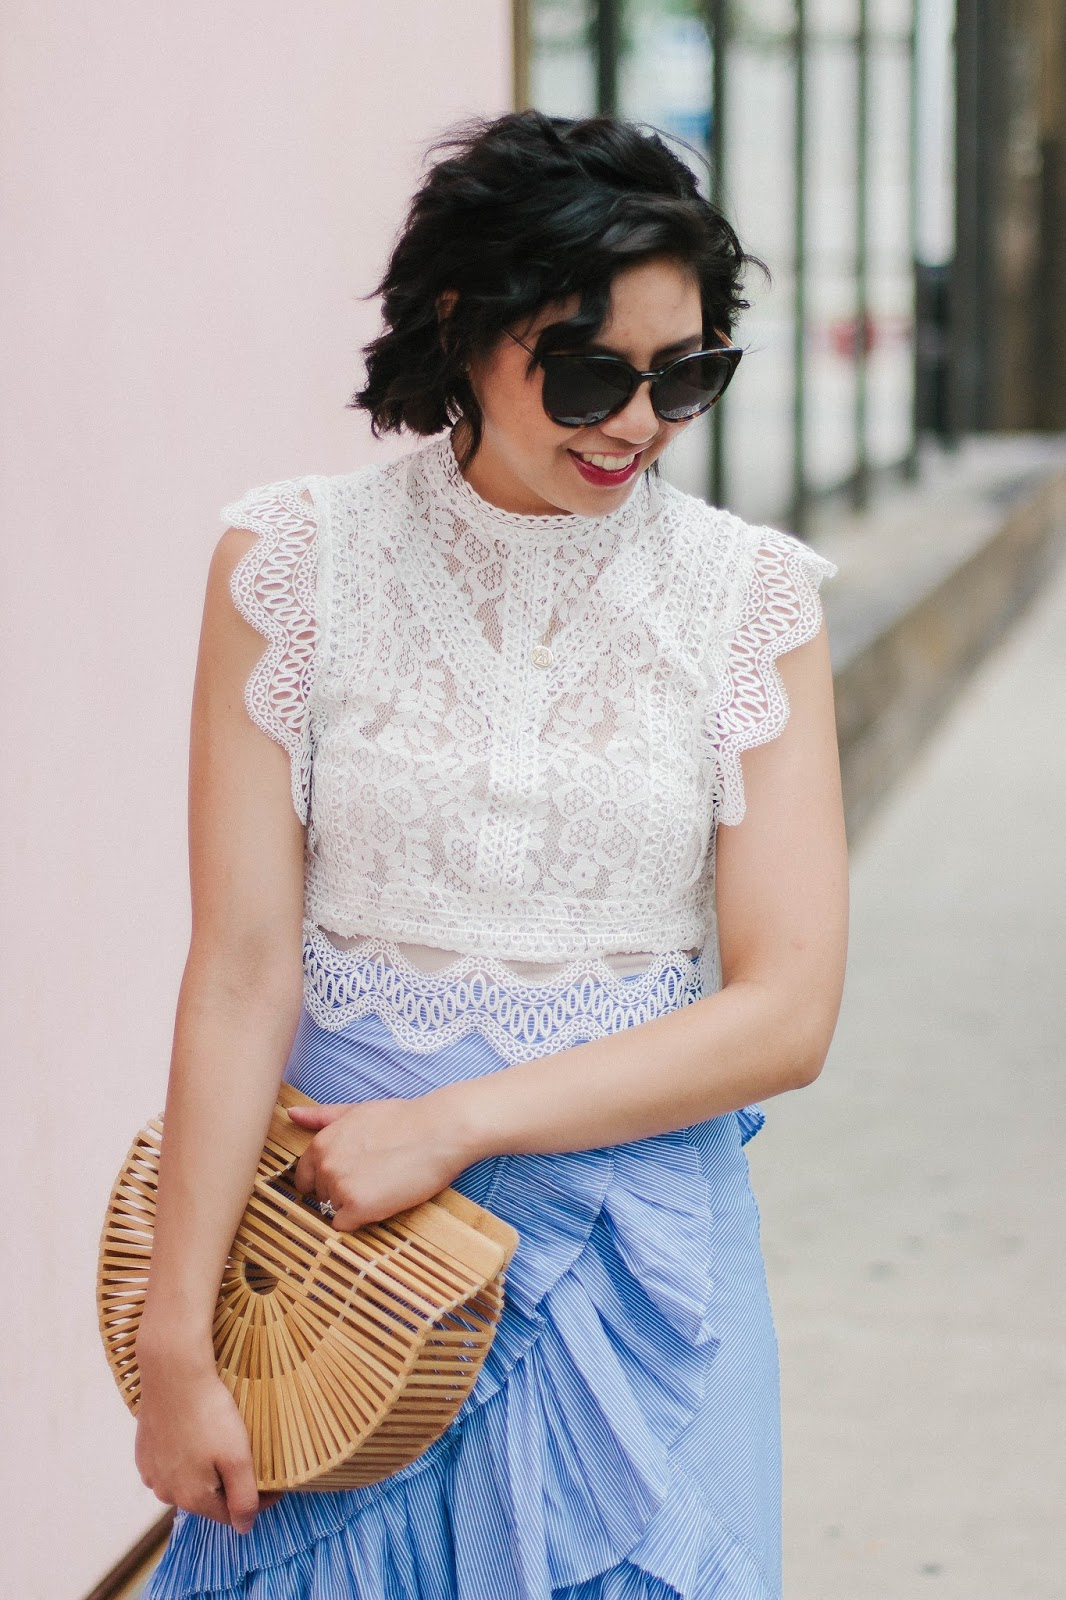 The Most Feminine Skirt and Statement Outfit